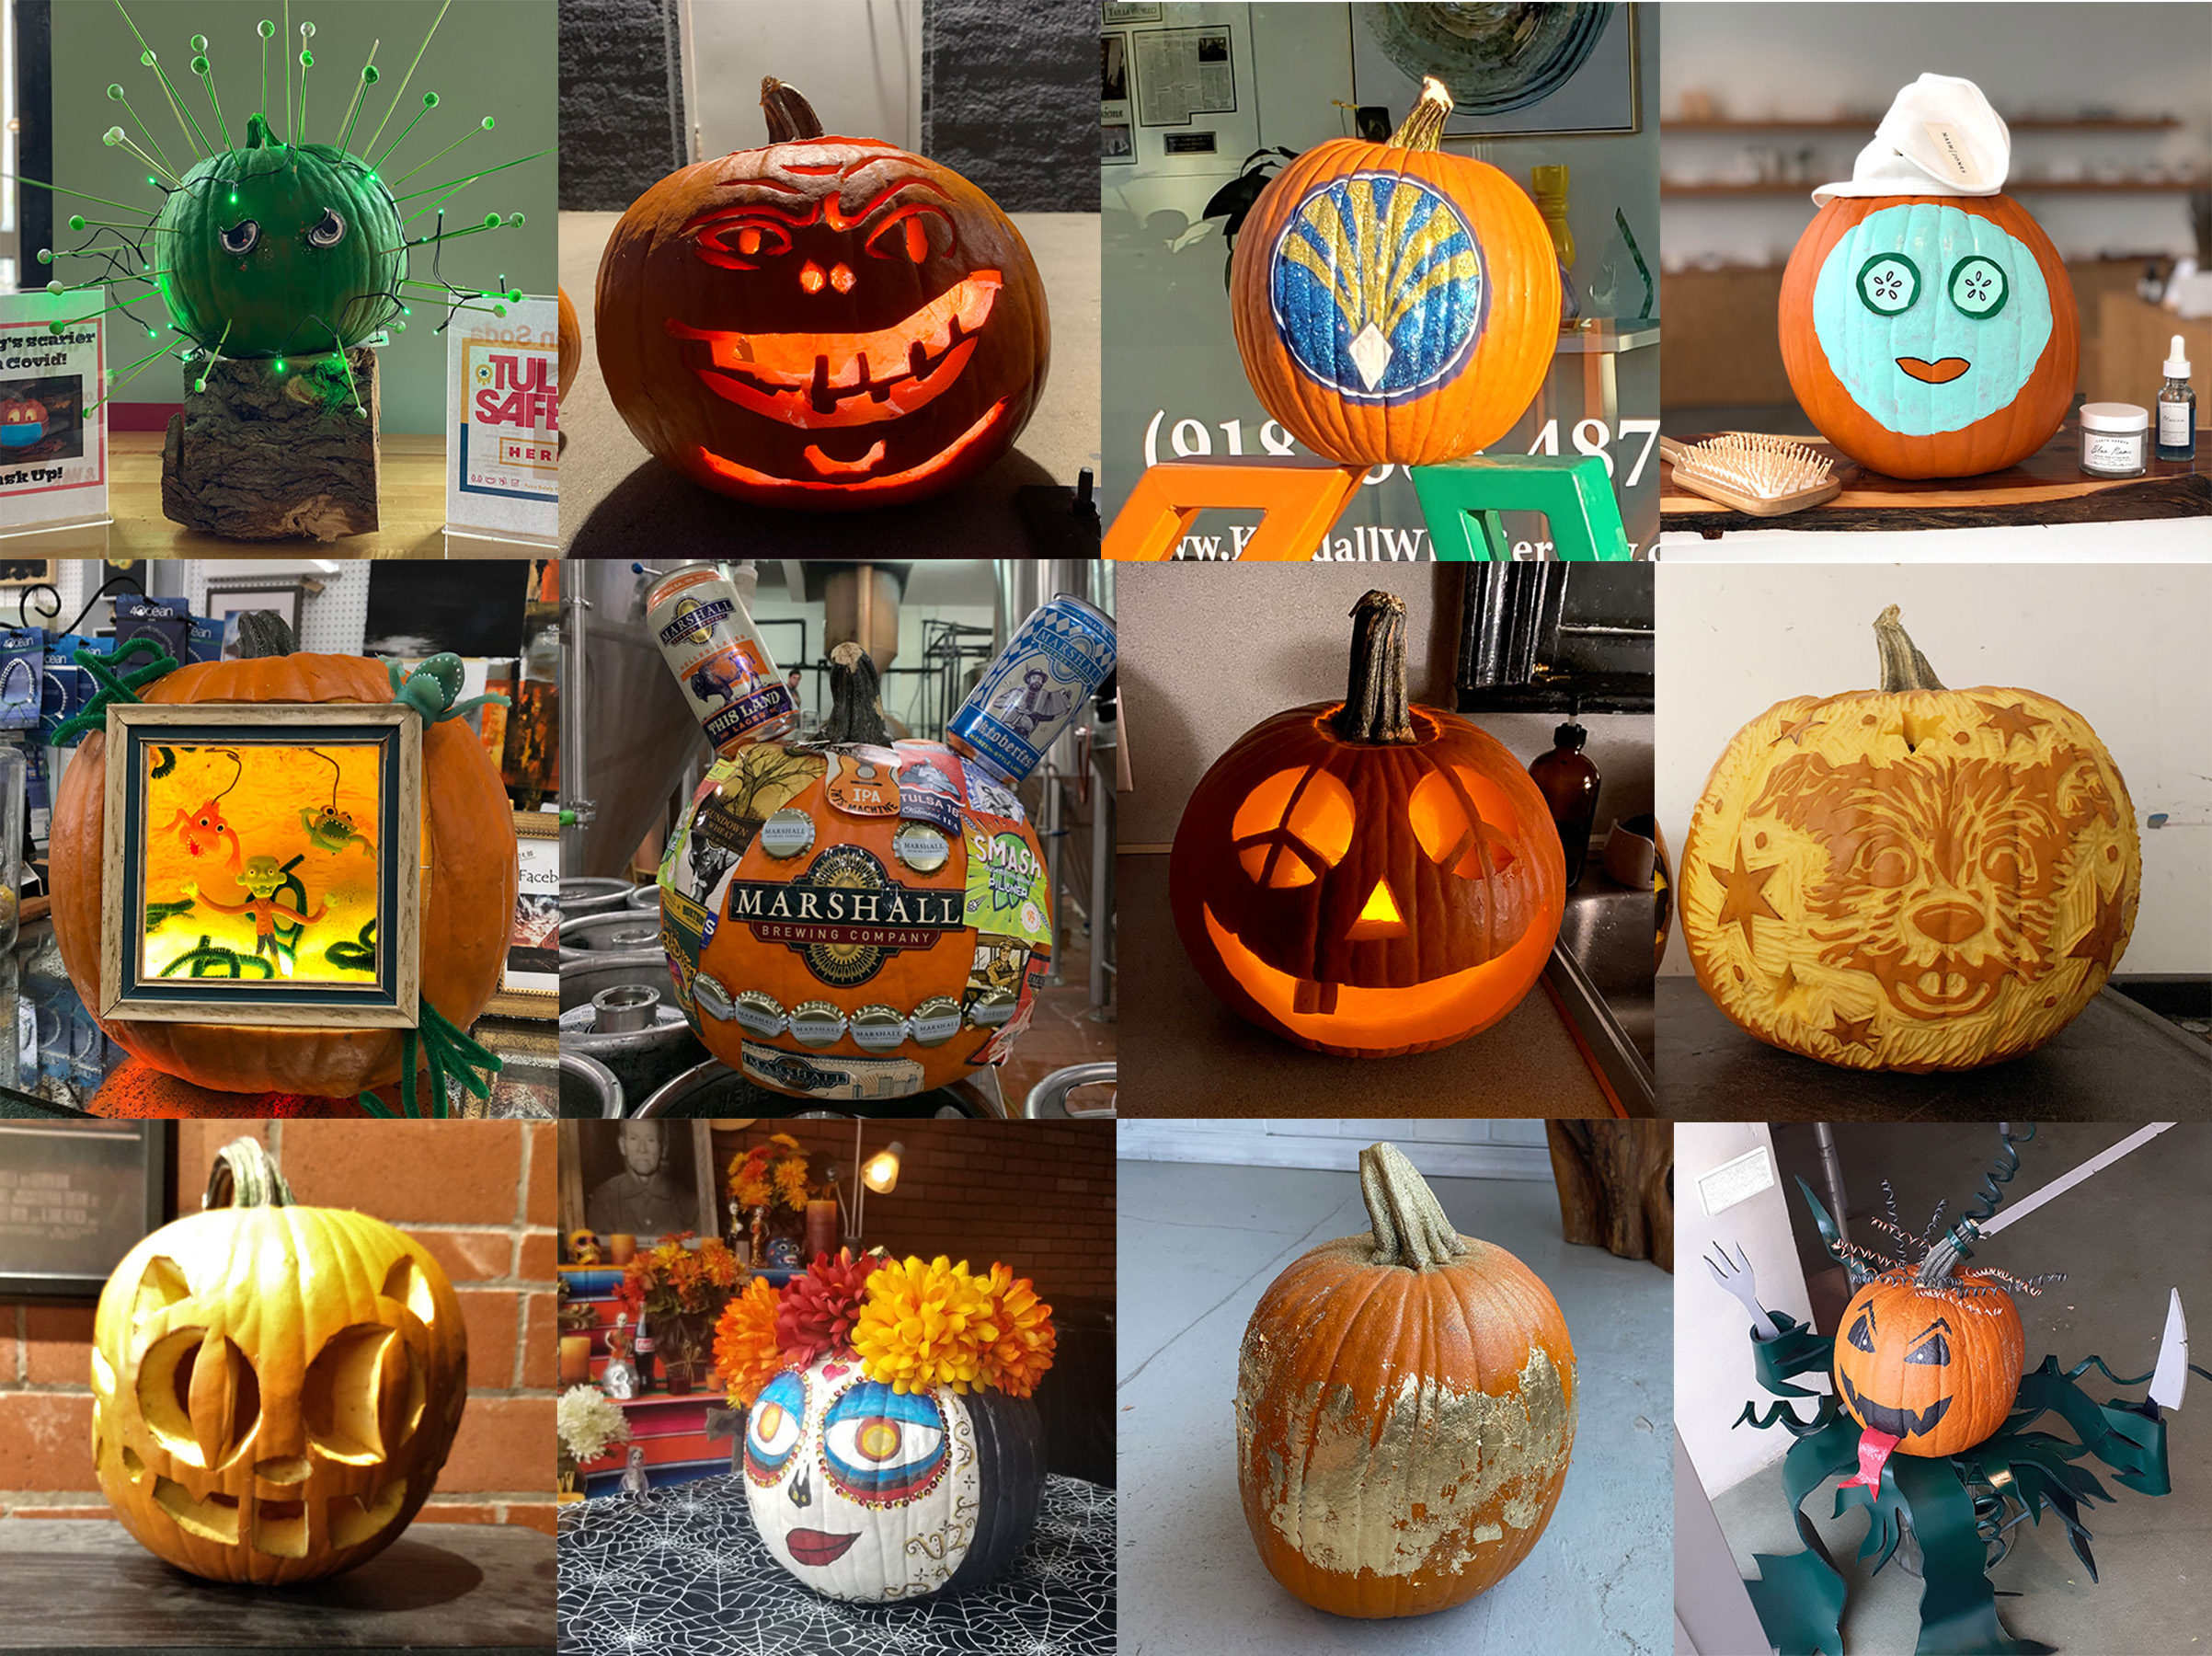 Businesses get creative with pumpkins this October